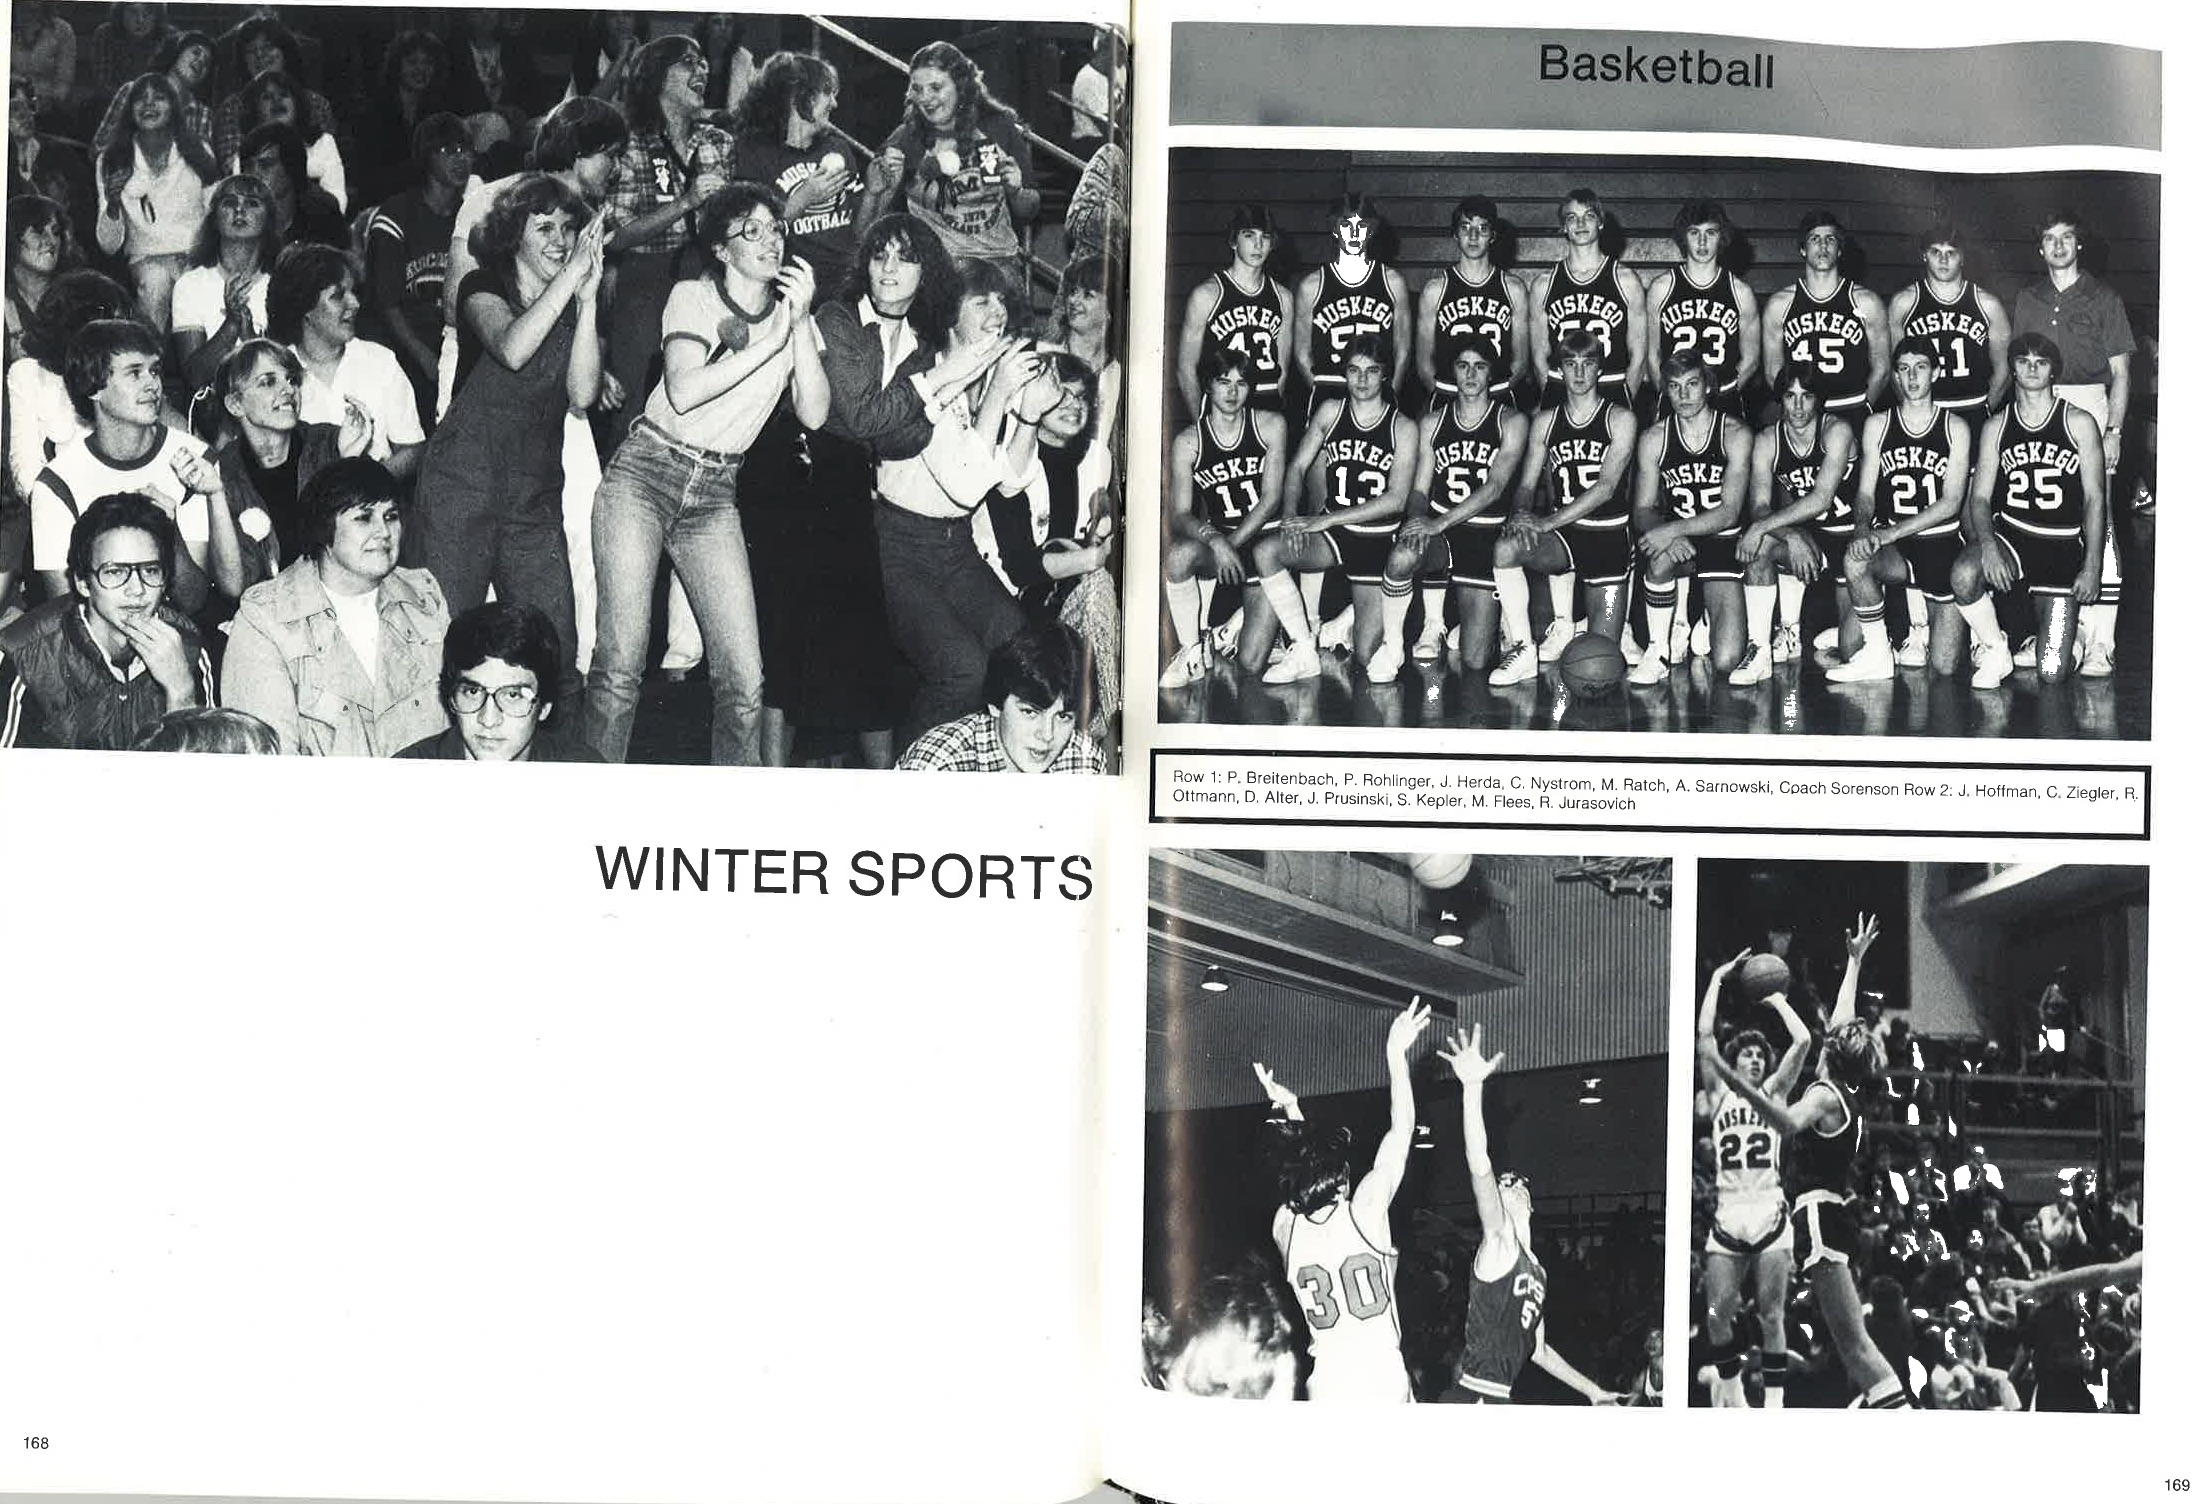 1981_Yearbook_168.jpg